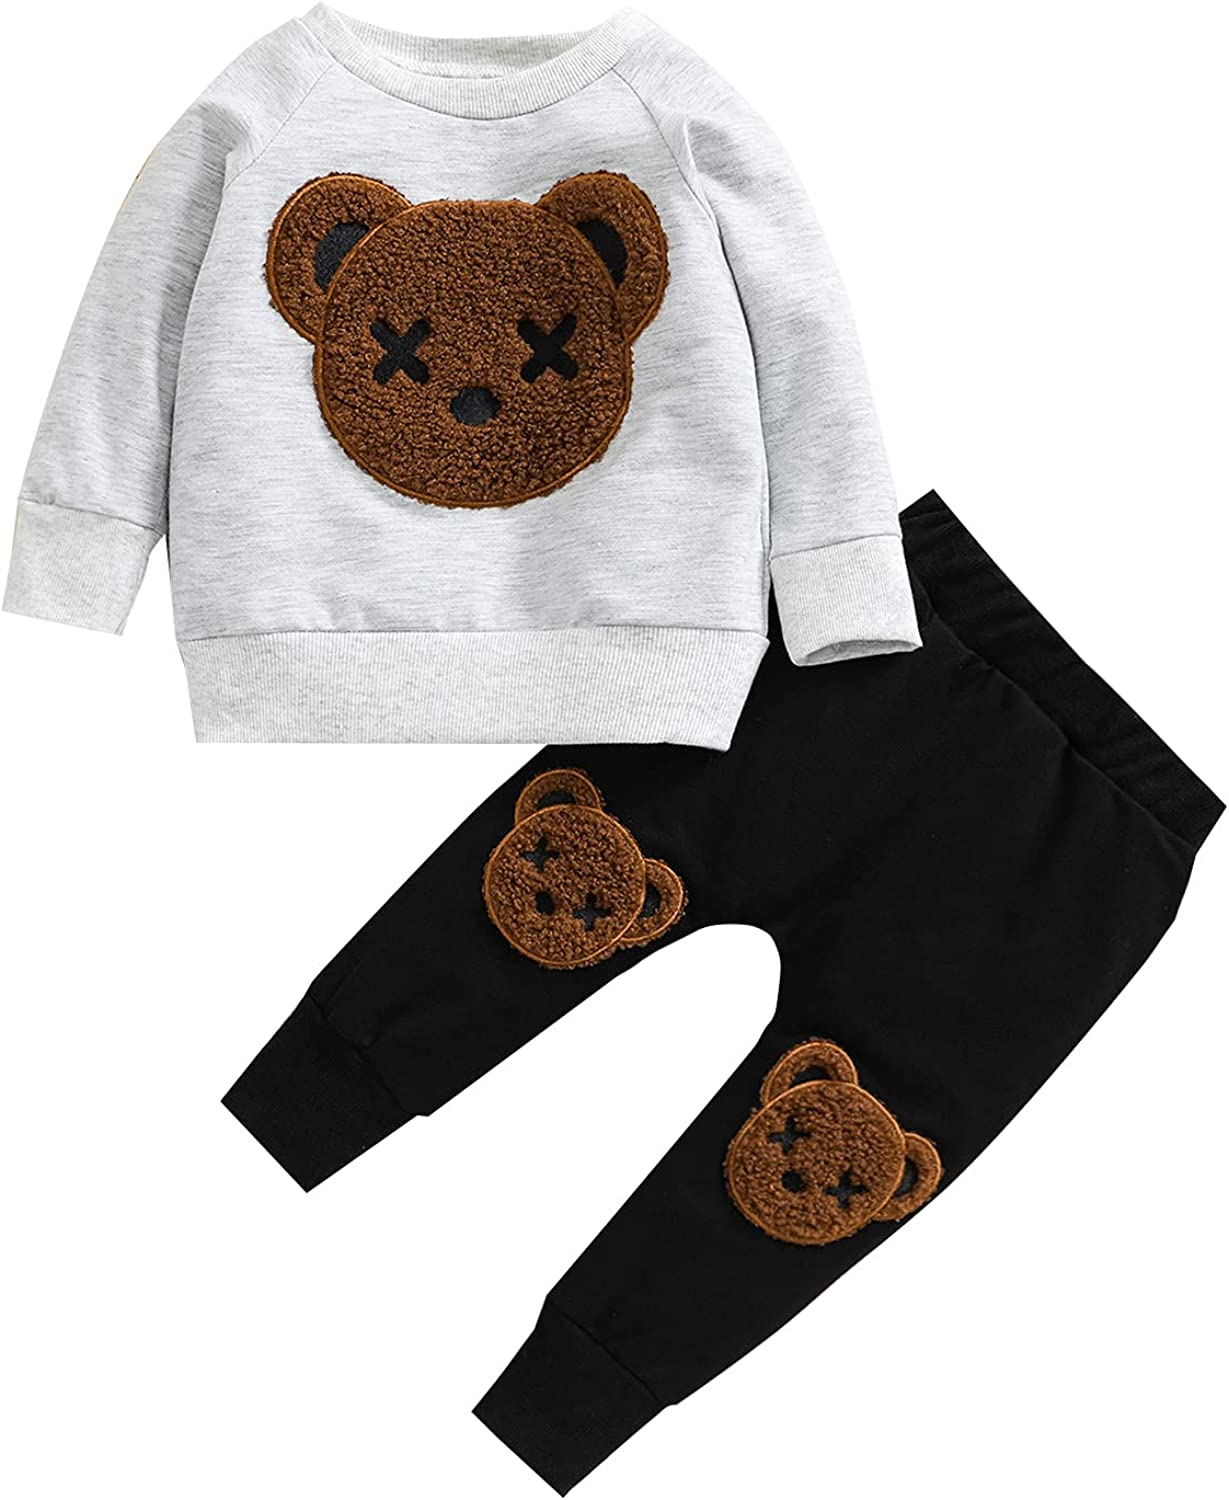 Toddler Kid Baby Boy Clothes Bear Long Sleeve Sweatshirt Top Fuzzy Patch Pants Sweatsuit 2PCS Fall Winter Outfits Set